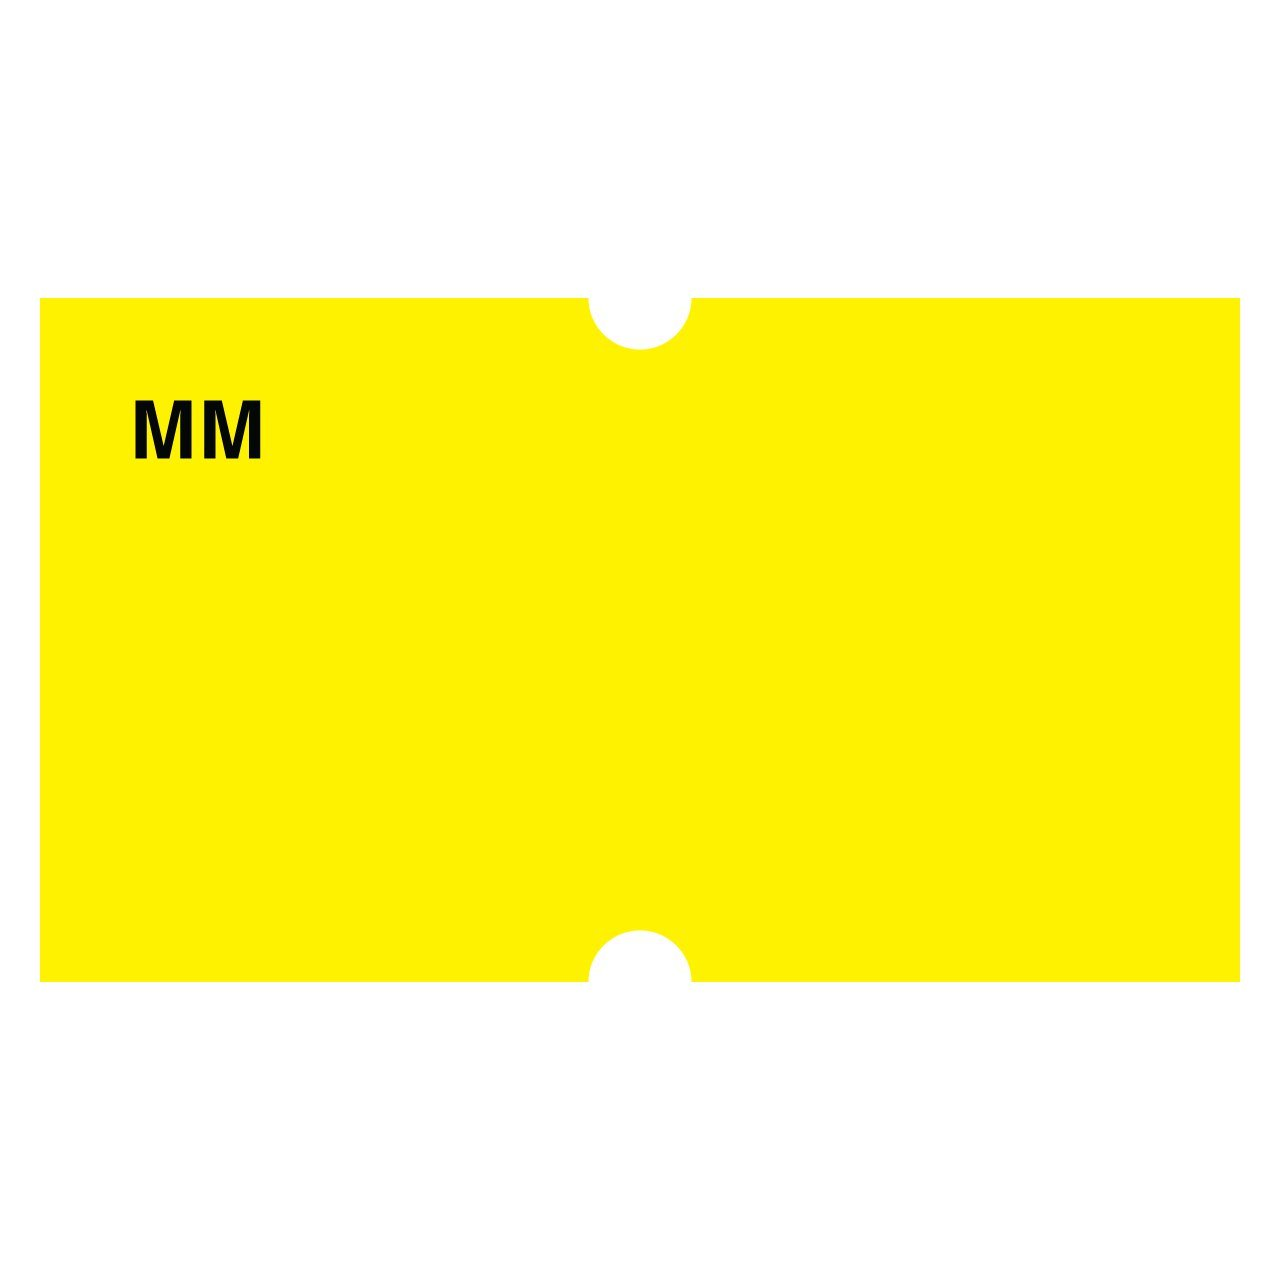 DayMark IT110434 MoveMark Date Coder Blank Removable Label, For DM3 SpeedyMark 10 1-Line Marking Gun, Yellow (Pack of 8 Rolls) by DayMark Safety Systems